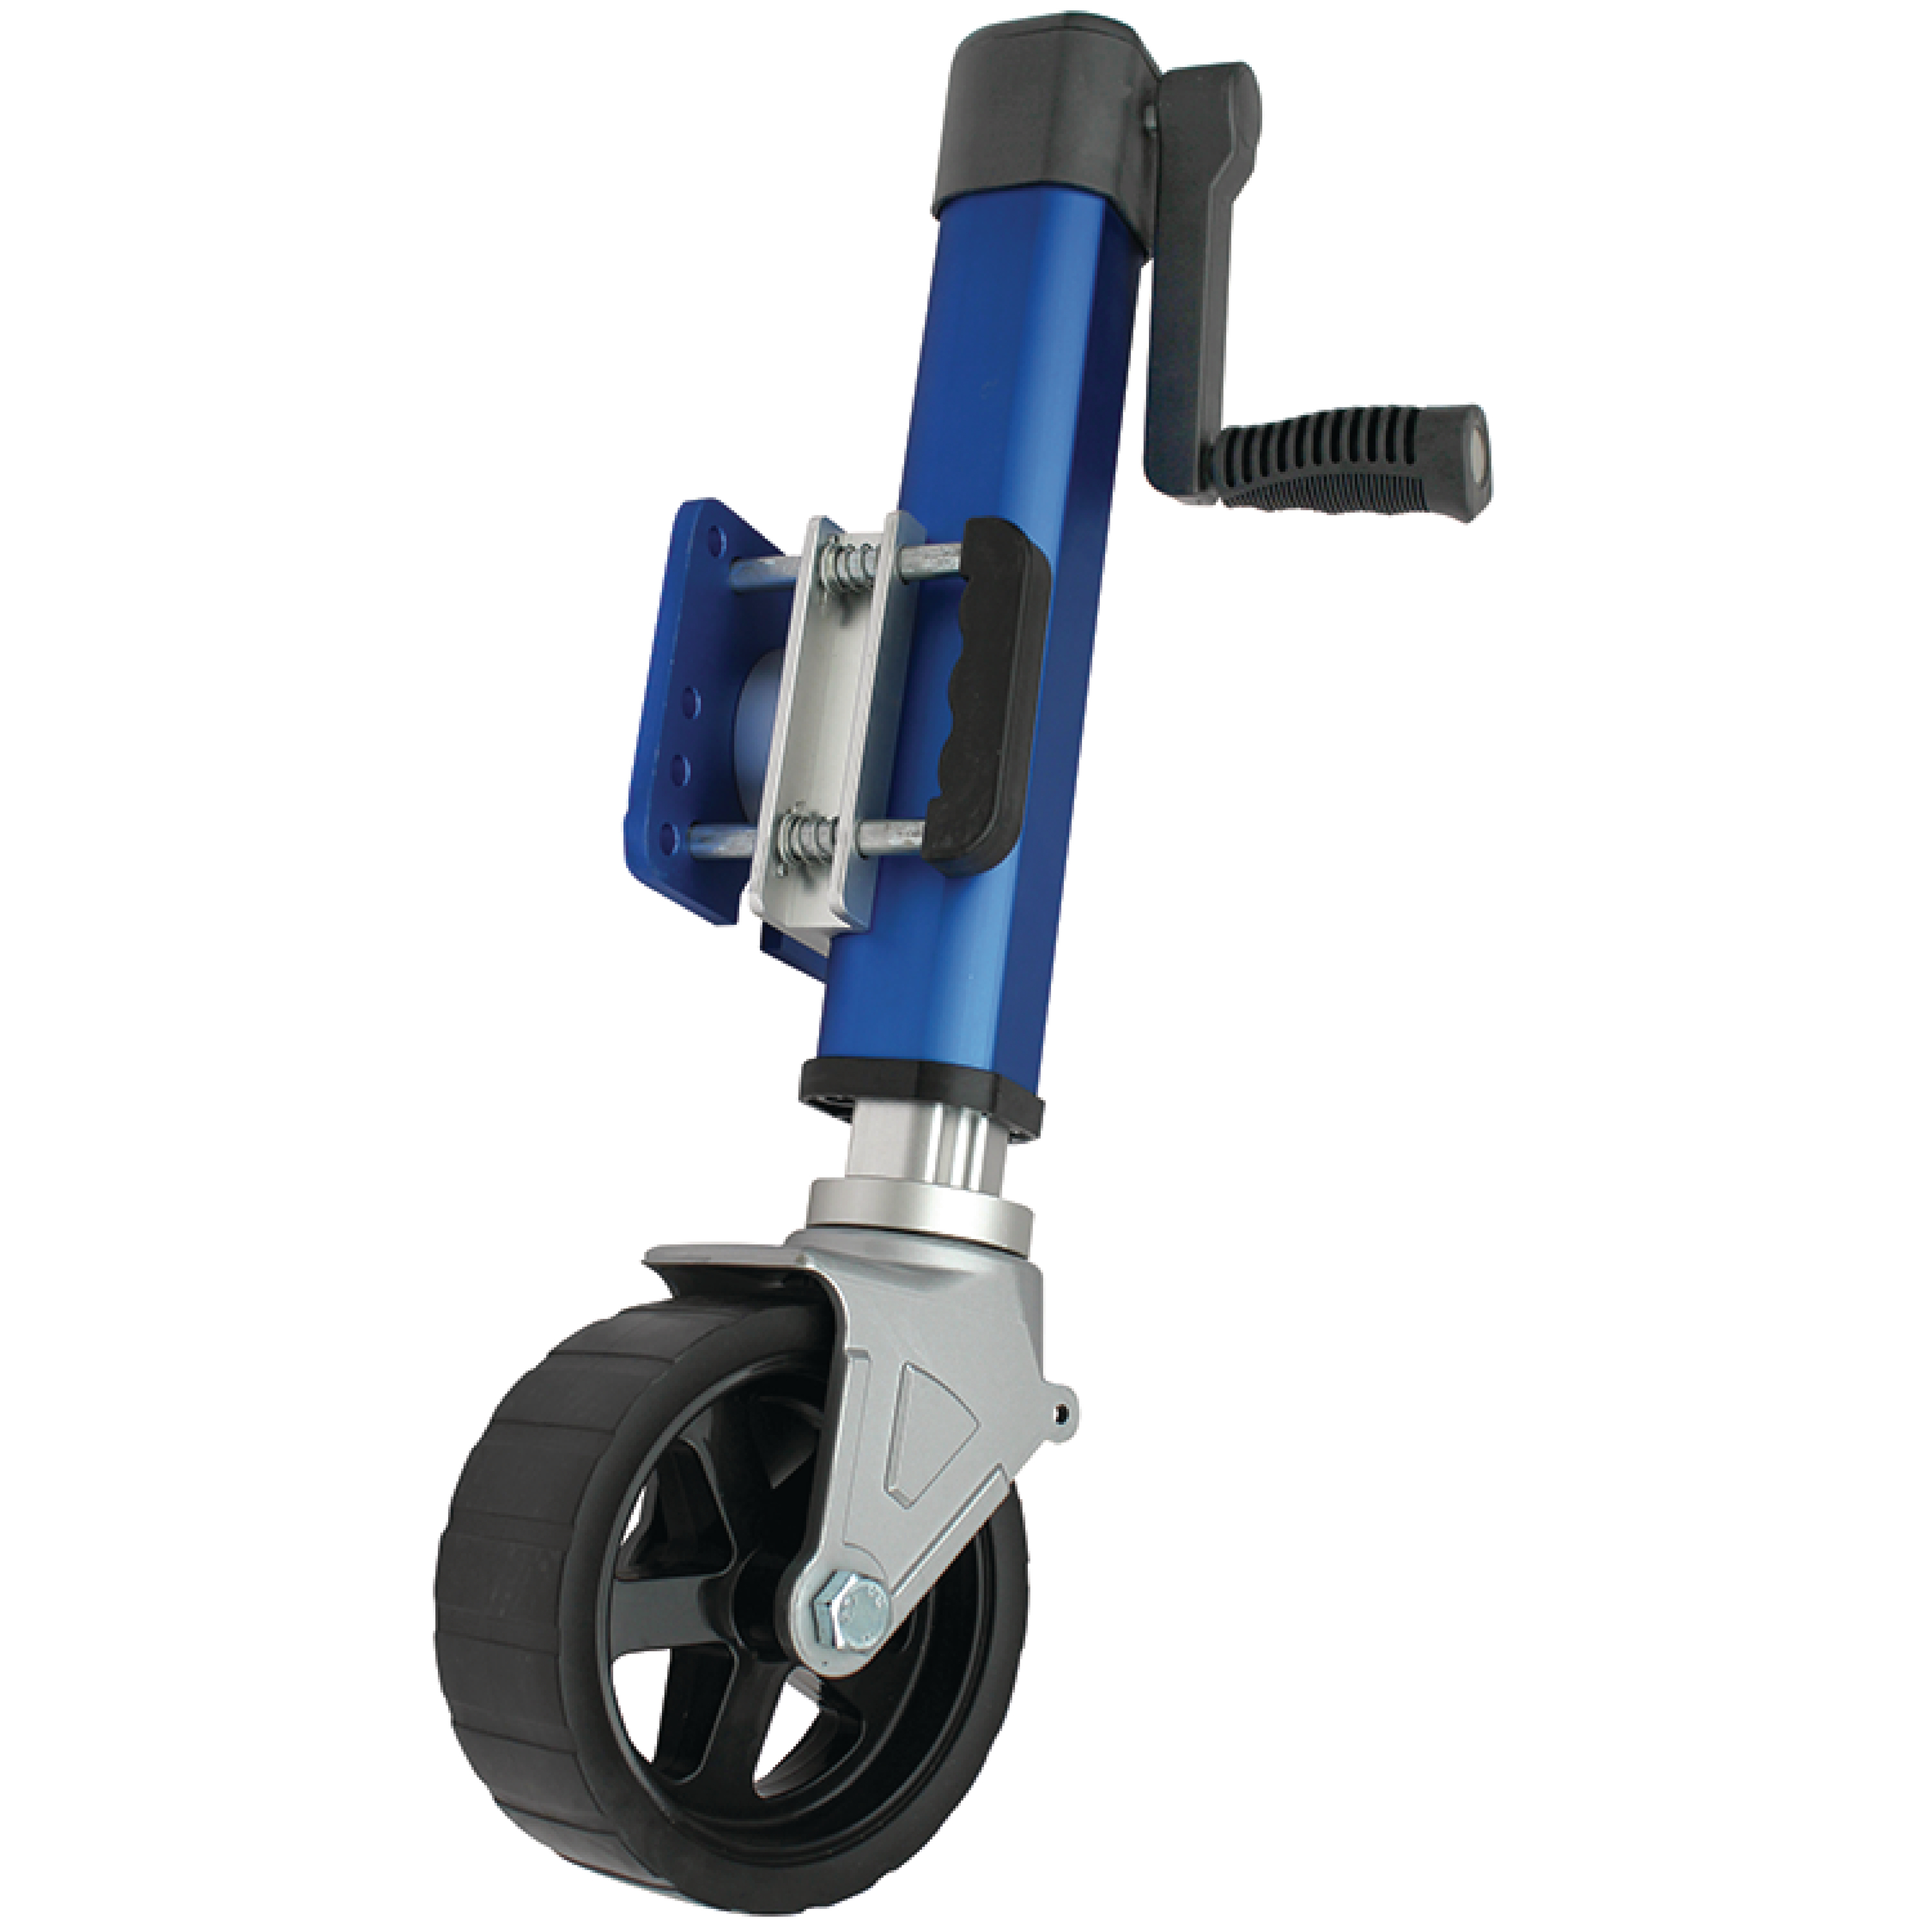 SeaChoice 53311 Blue Heavy Duty Aluminum Trailer Jack with 1,800 lb. Max Load